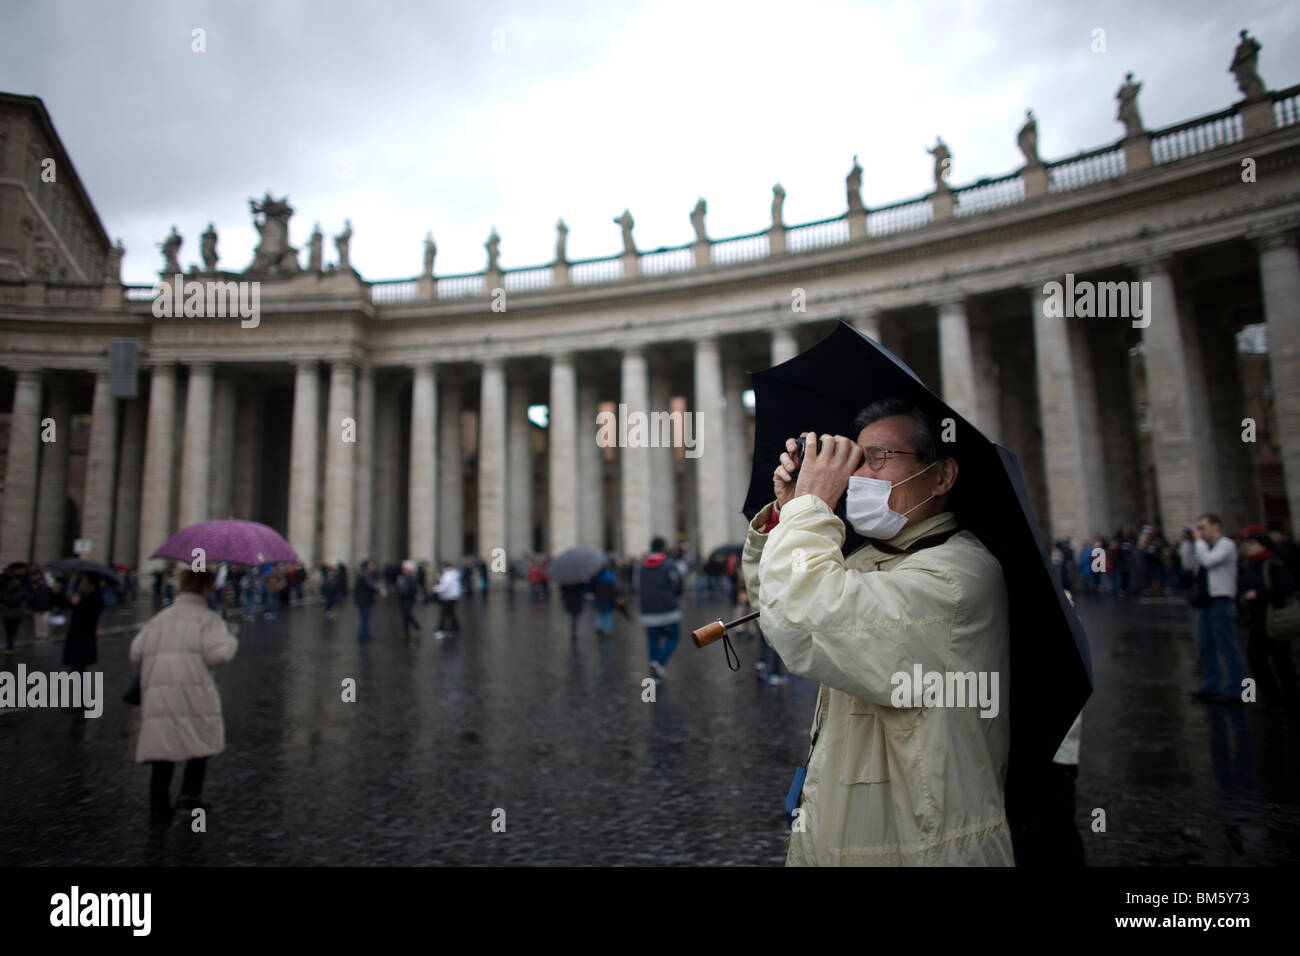 A tourist takes a picture in the rain in Saint Peter's Square in Vatican City, Rome, March 10, 2008. Photo/Chico Stock Photo